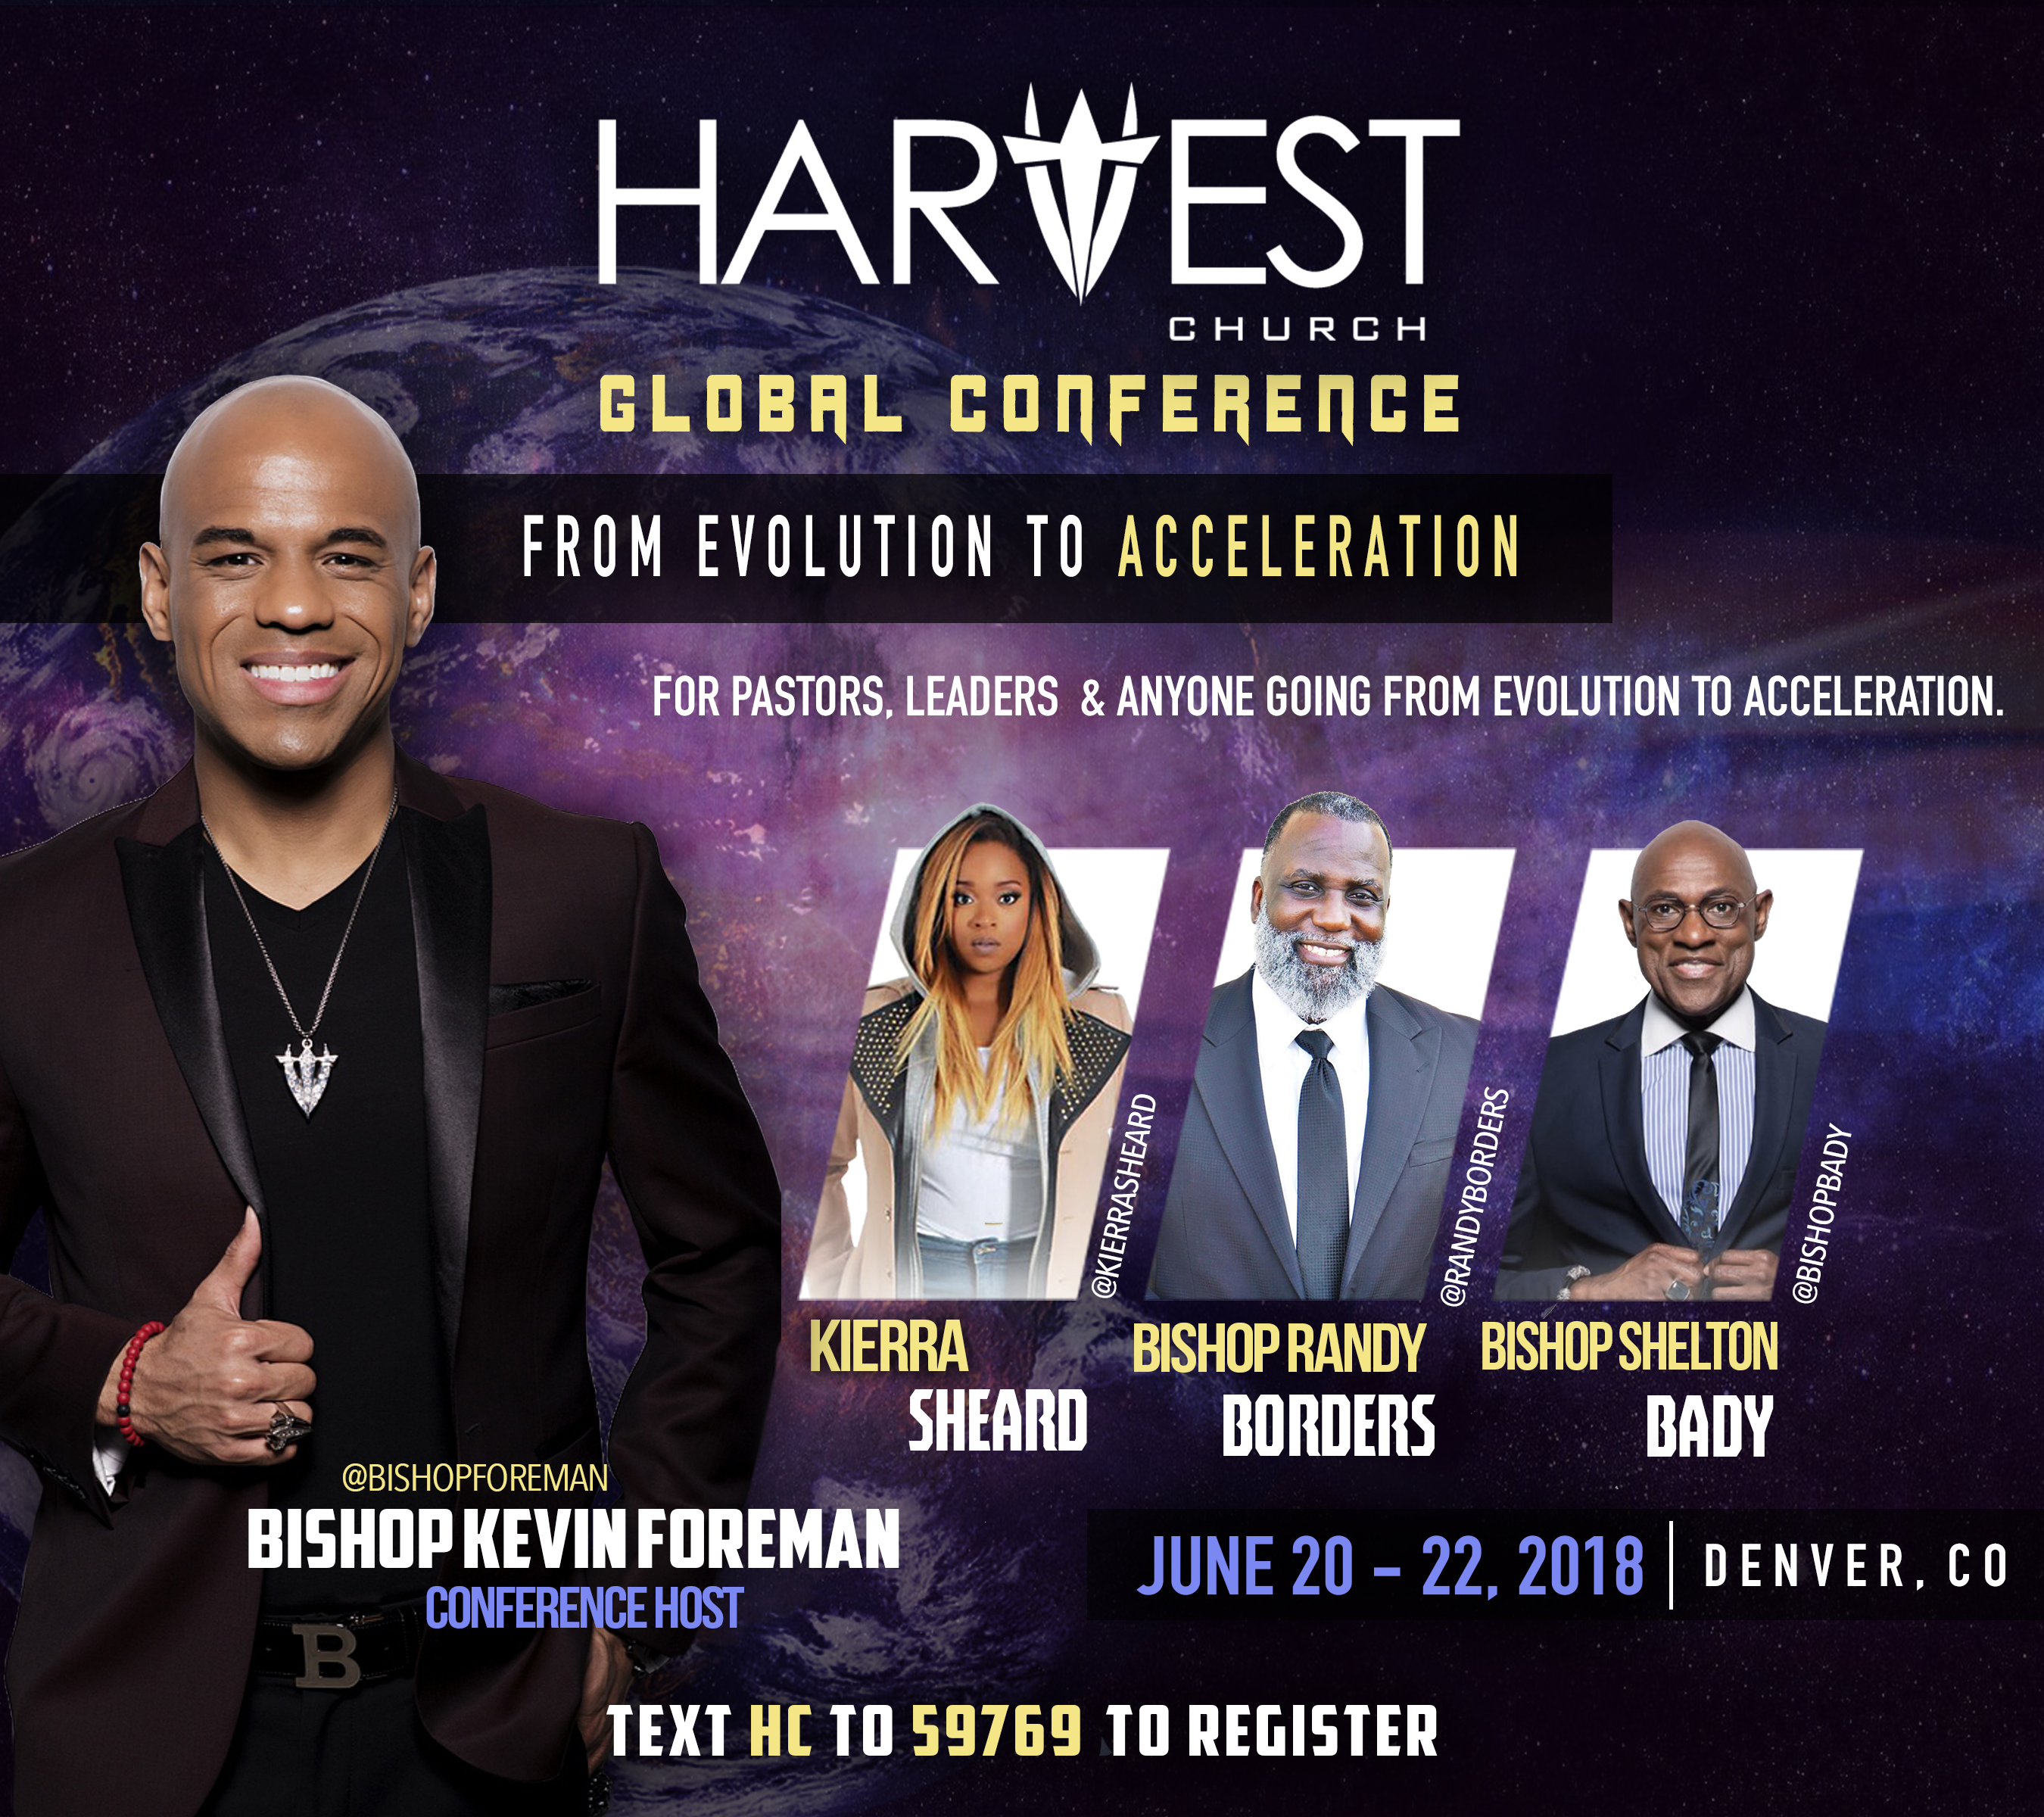 Global conference full 3.07.22 pm